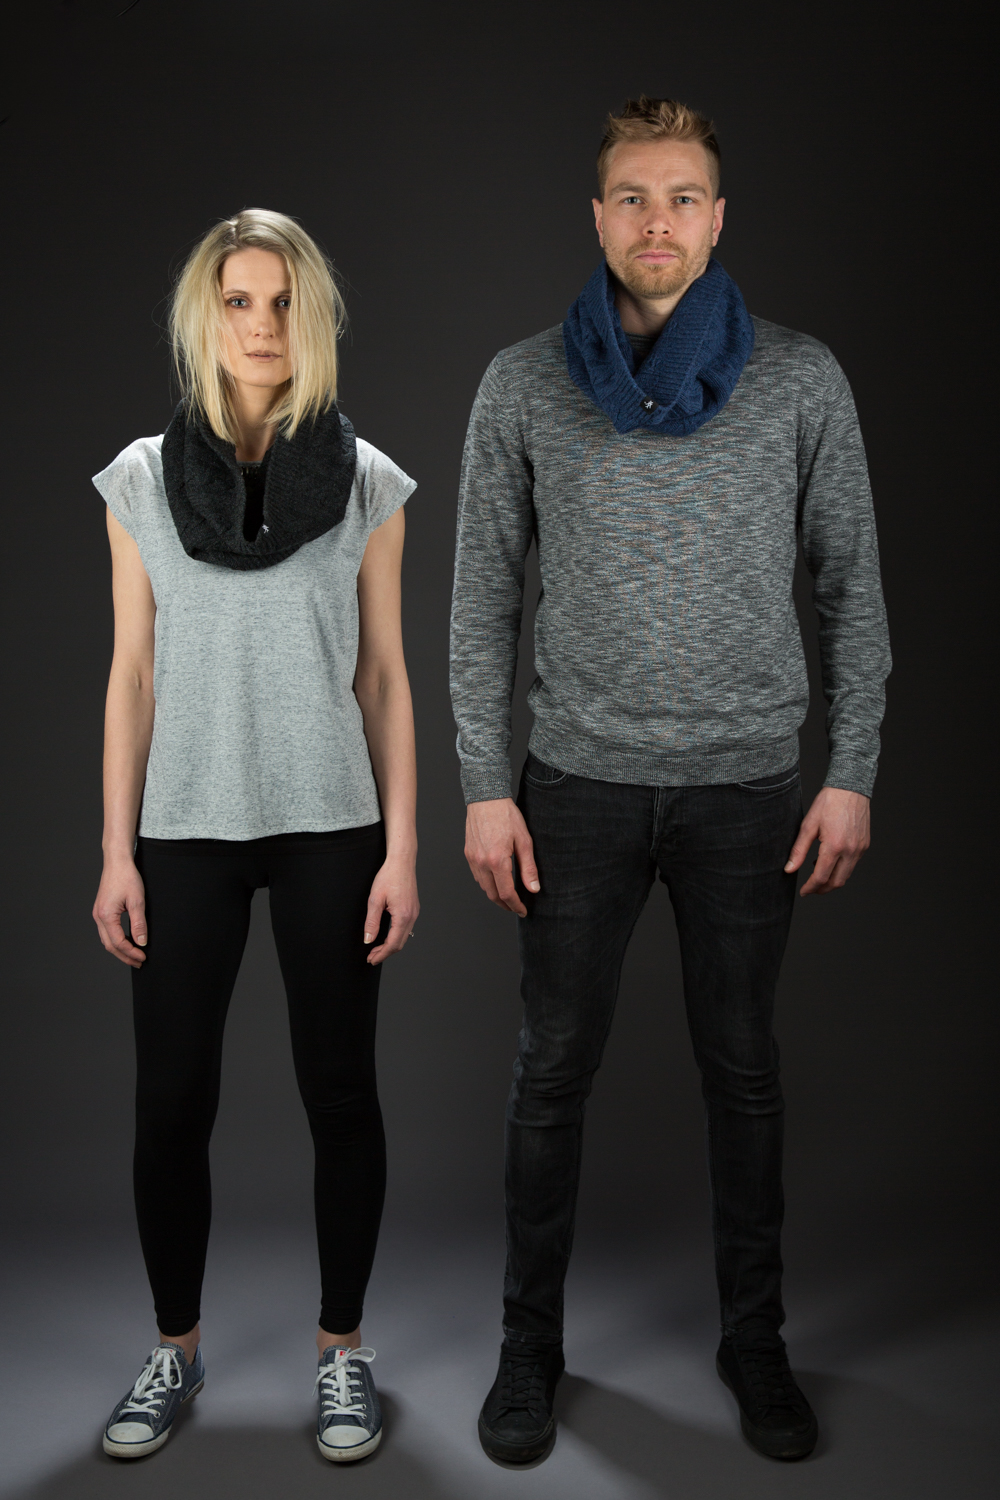 WAR_fashion_knitwear_photography_studio_location_rushworth_berwick_photographer-7.jpg